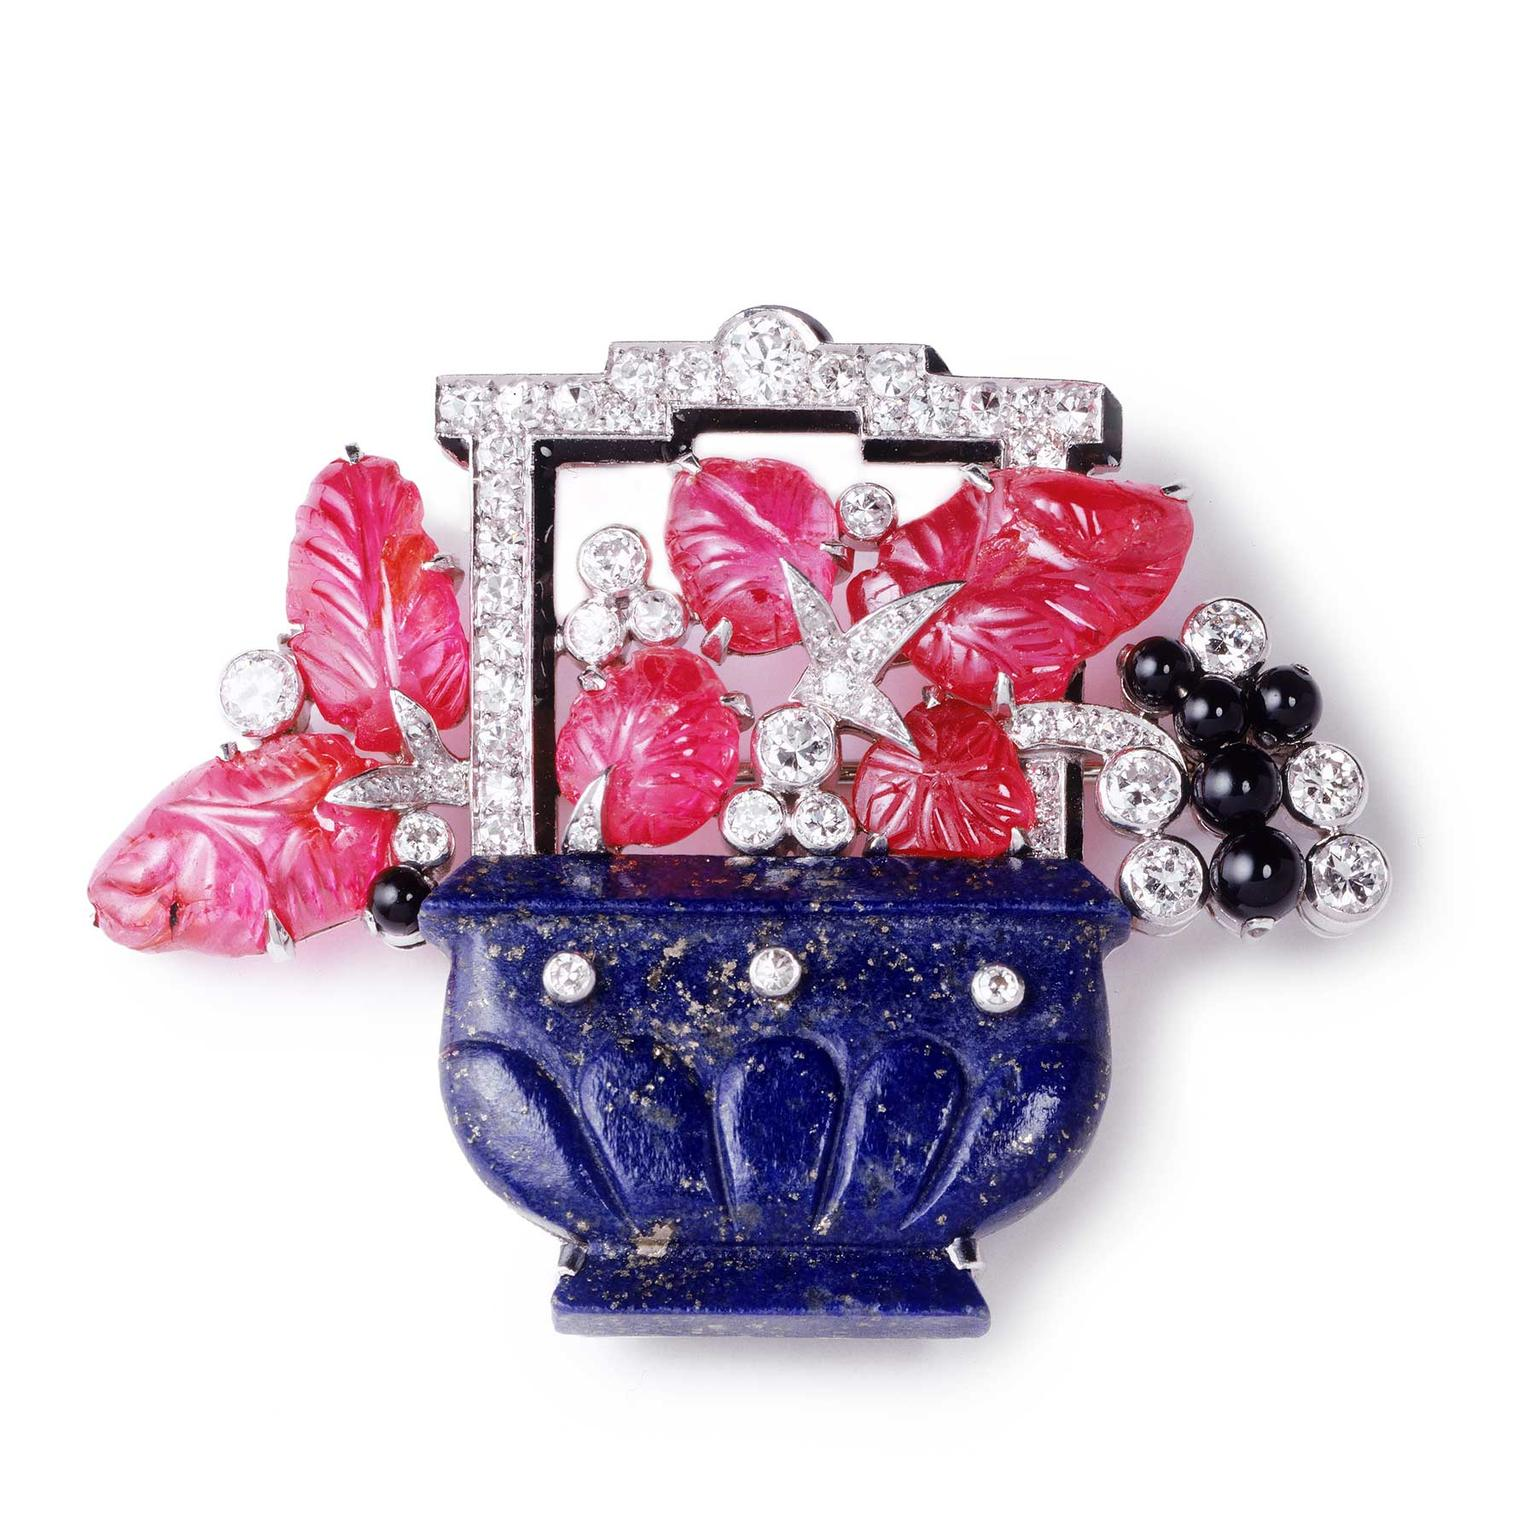 Cartier Collection lapis lazuli Chinese vase brooch, 1927